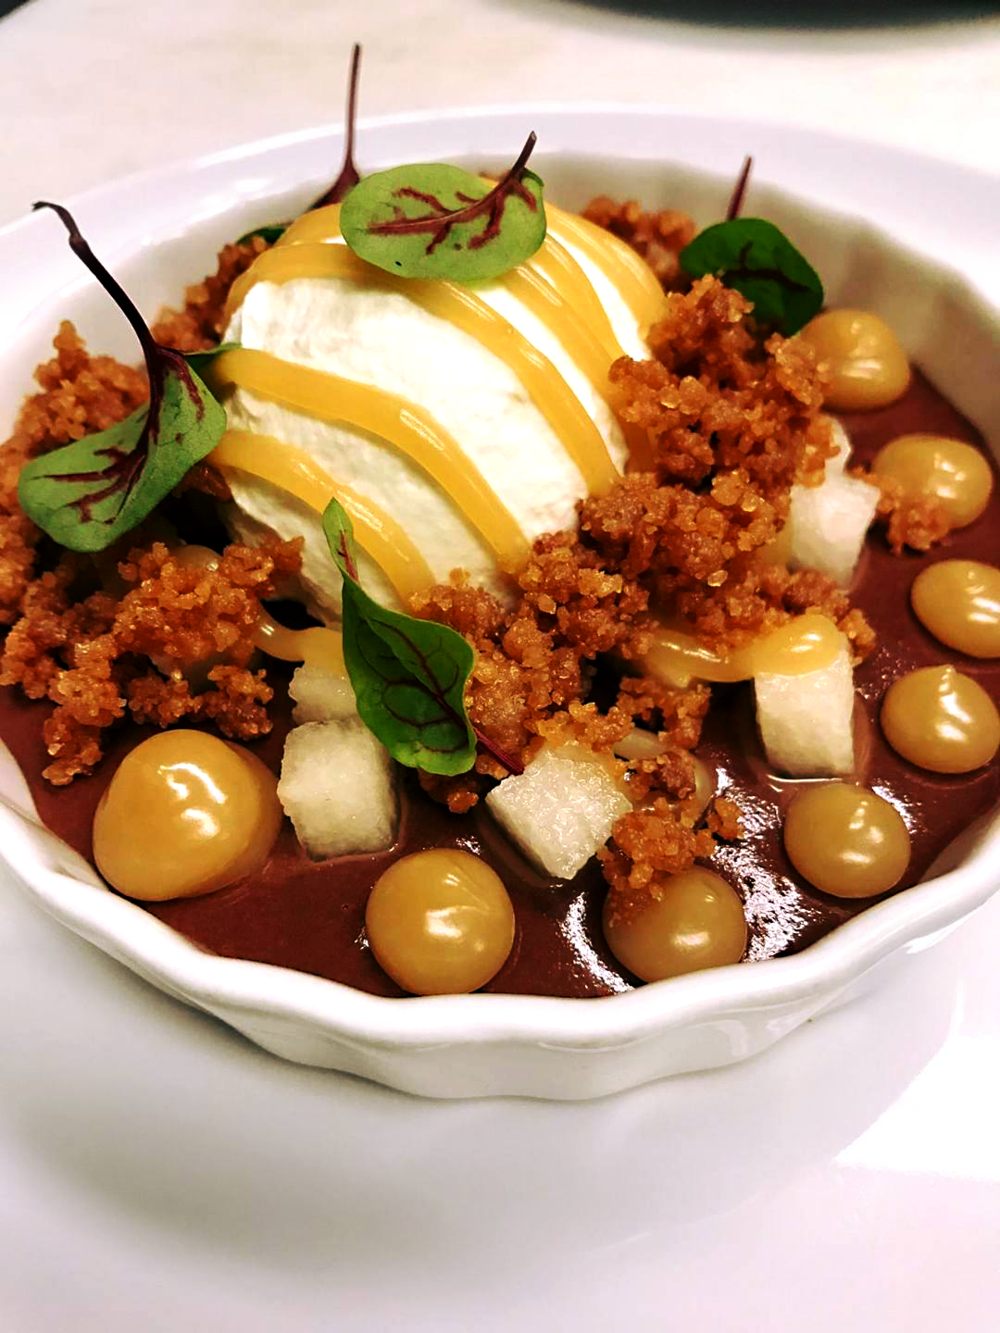 Dark Chocolate Pudding  accompanied by a Bourbon poached pear, caramel sauce, streusel, and whipped cream.